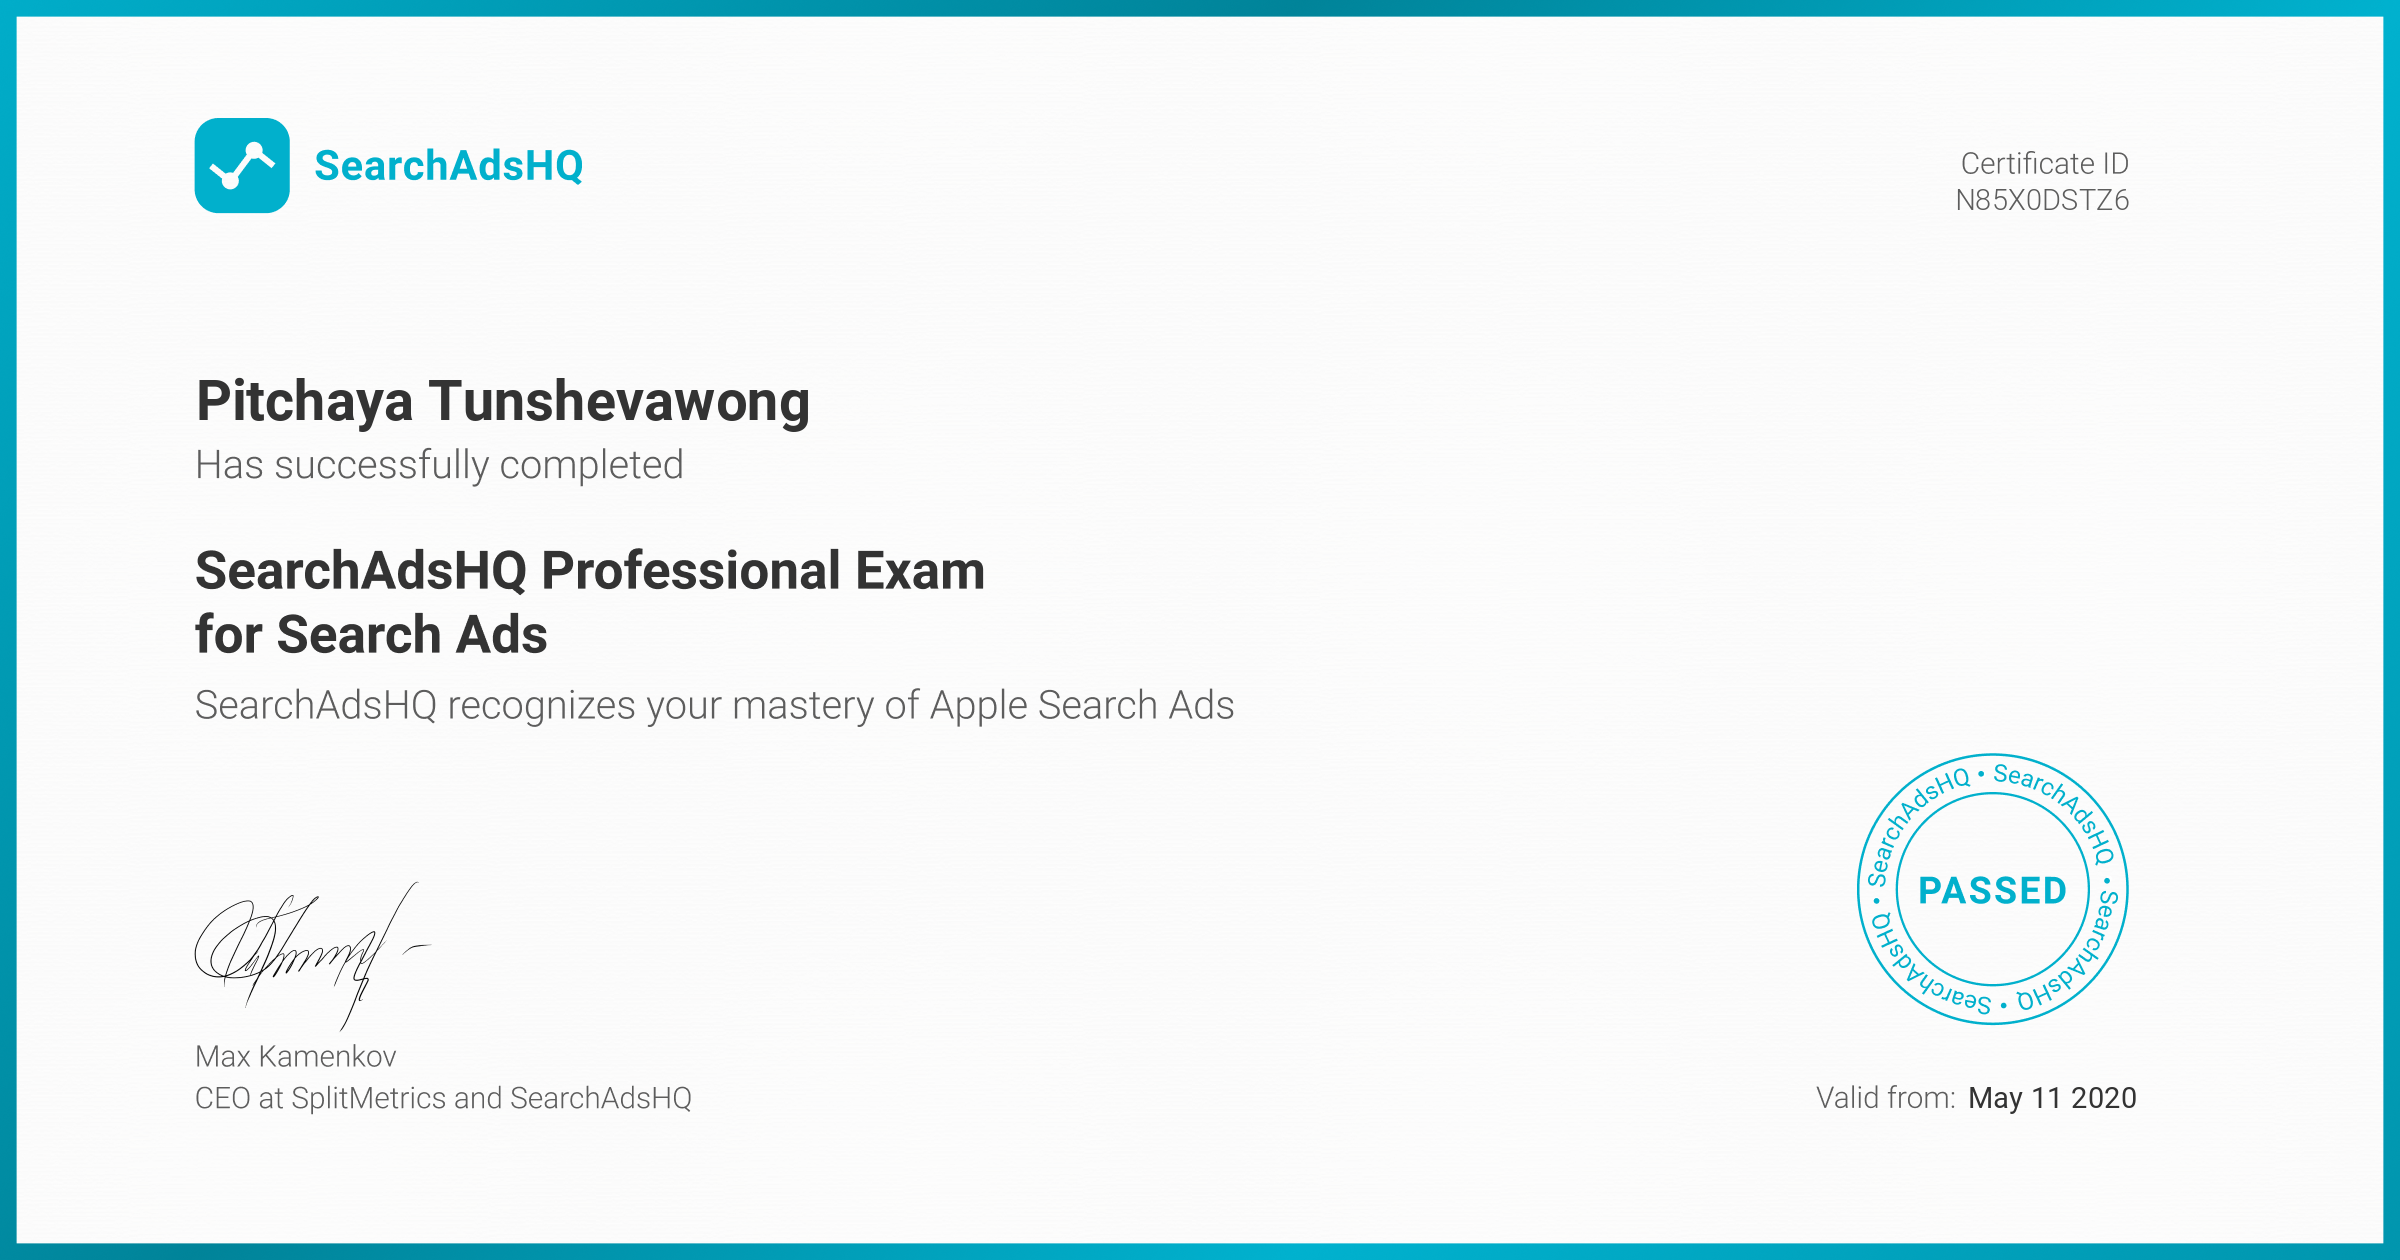 Certificate for Pitchaya Tunshevawong | SearchAdsHQ Professional Exam for Search Ads